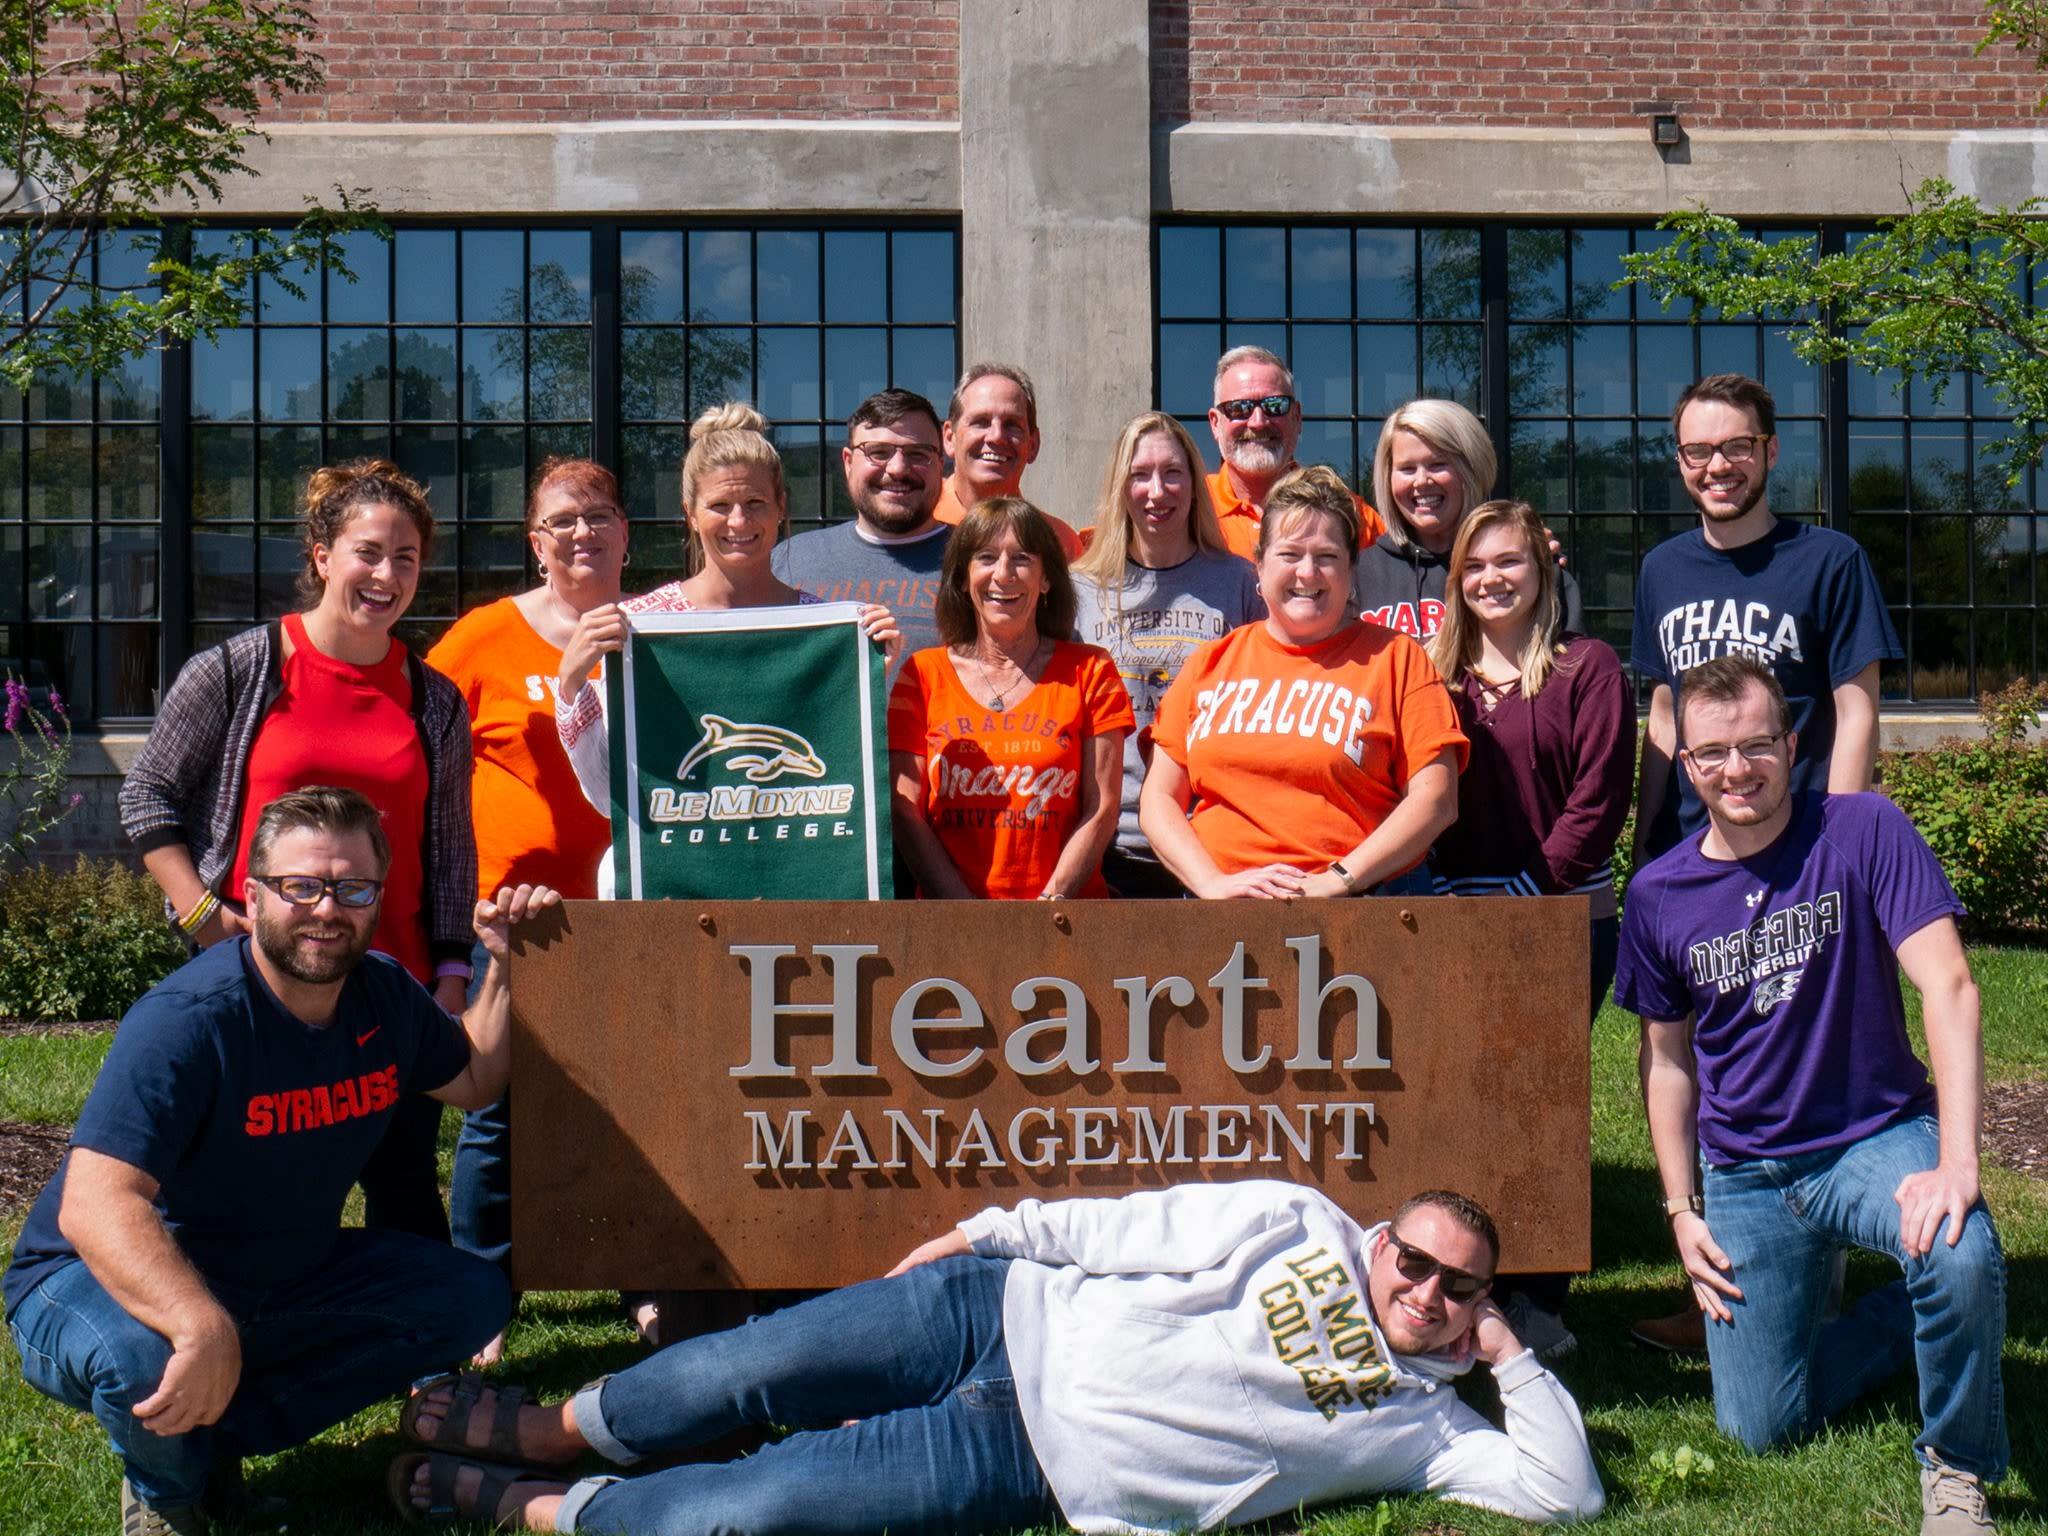 Hearth Management team members in front of our sign